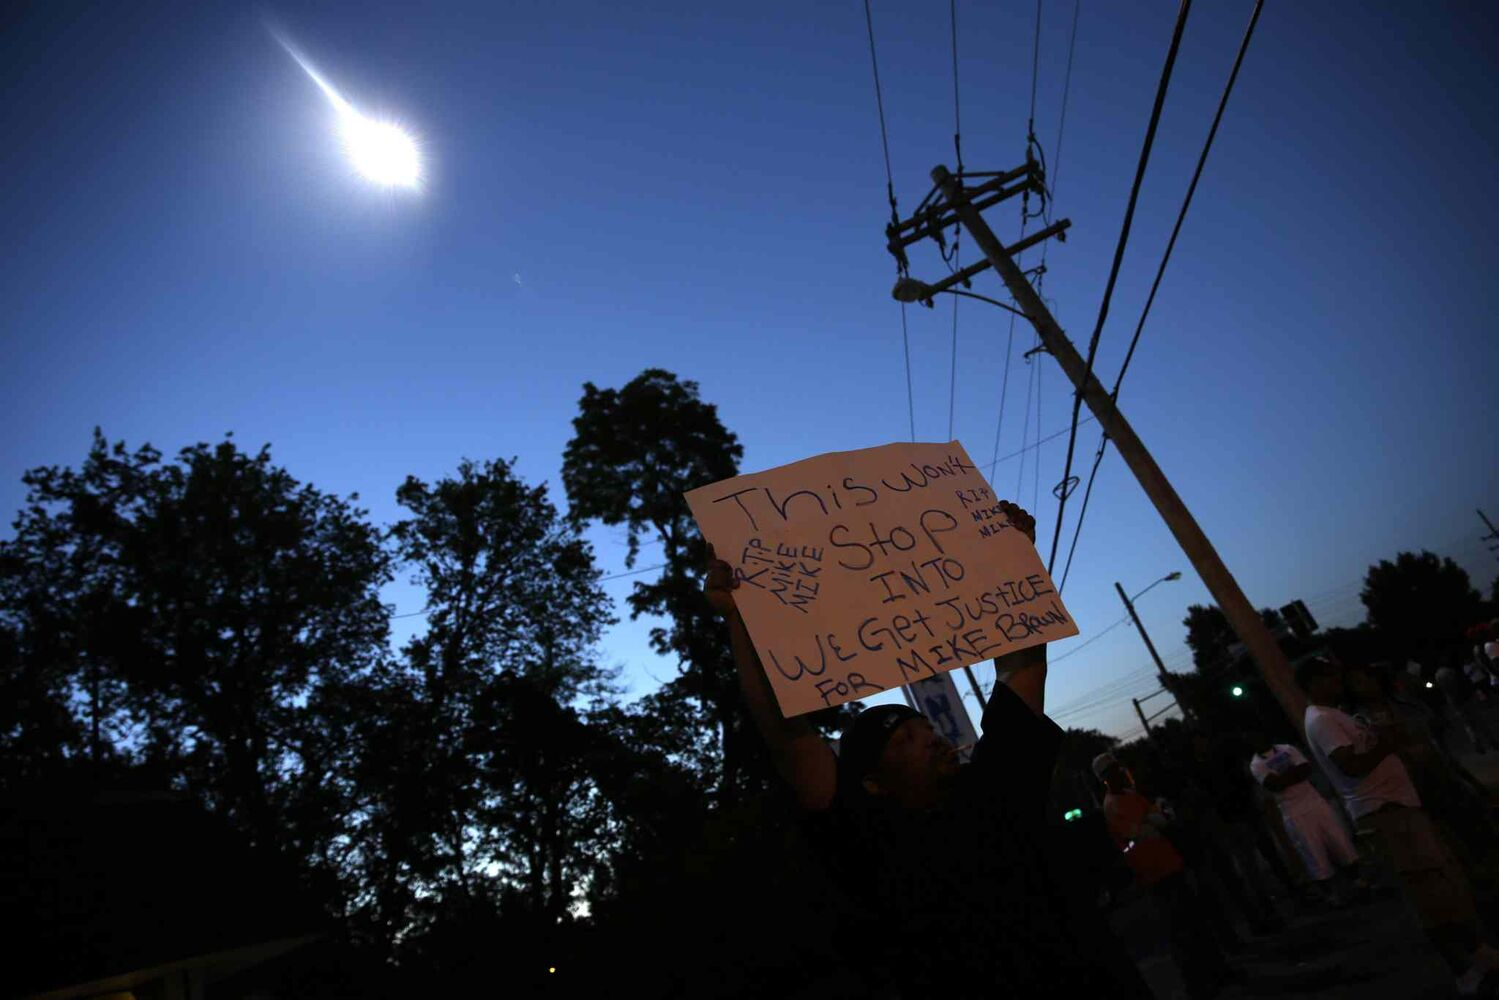 A protester holds up a sign as a police helicopter circles overhead Wednesday. (Jeff Roberson / The Associated Press)